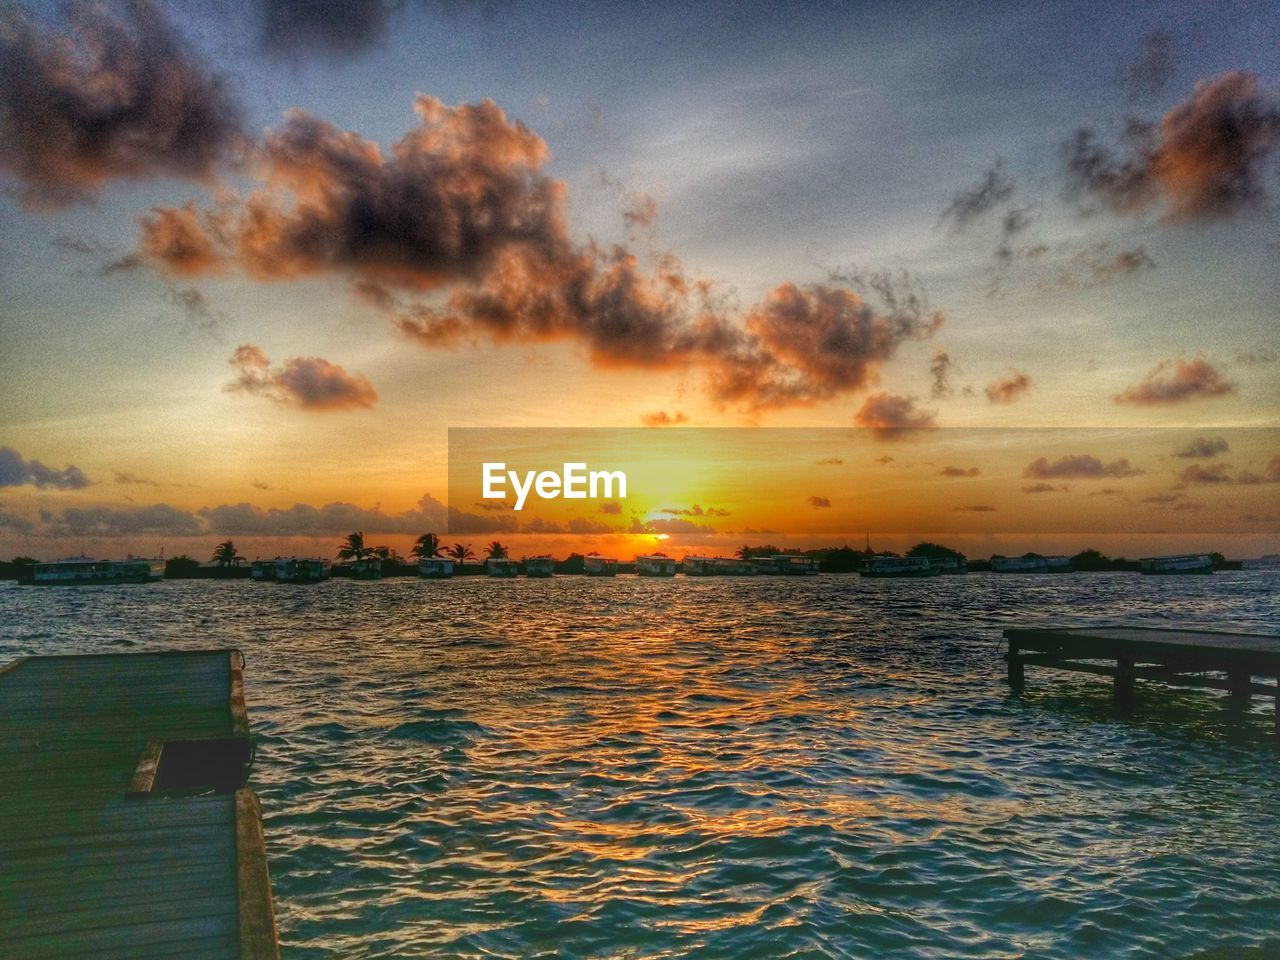 sunset, sea, water, nature, beauty in nature, sky, scenics, tranquility, tranquil scene, no people, outdoors, cloud - sky